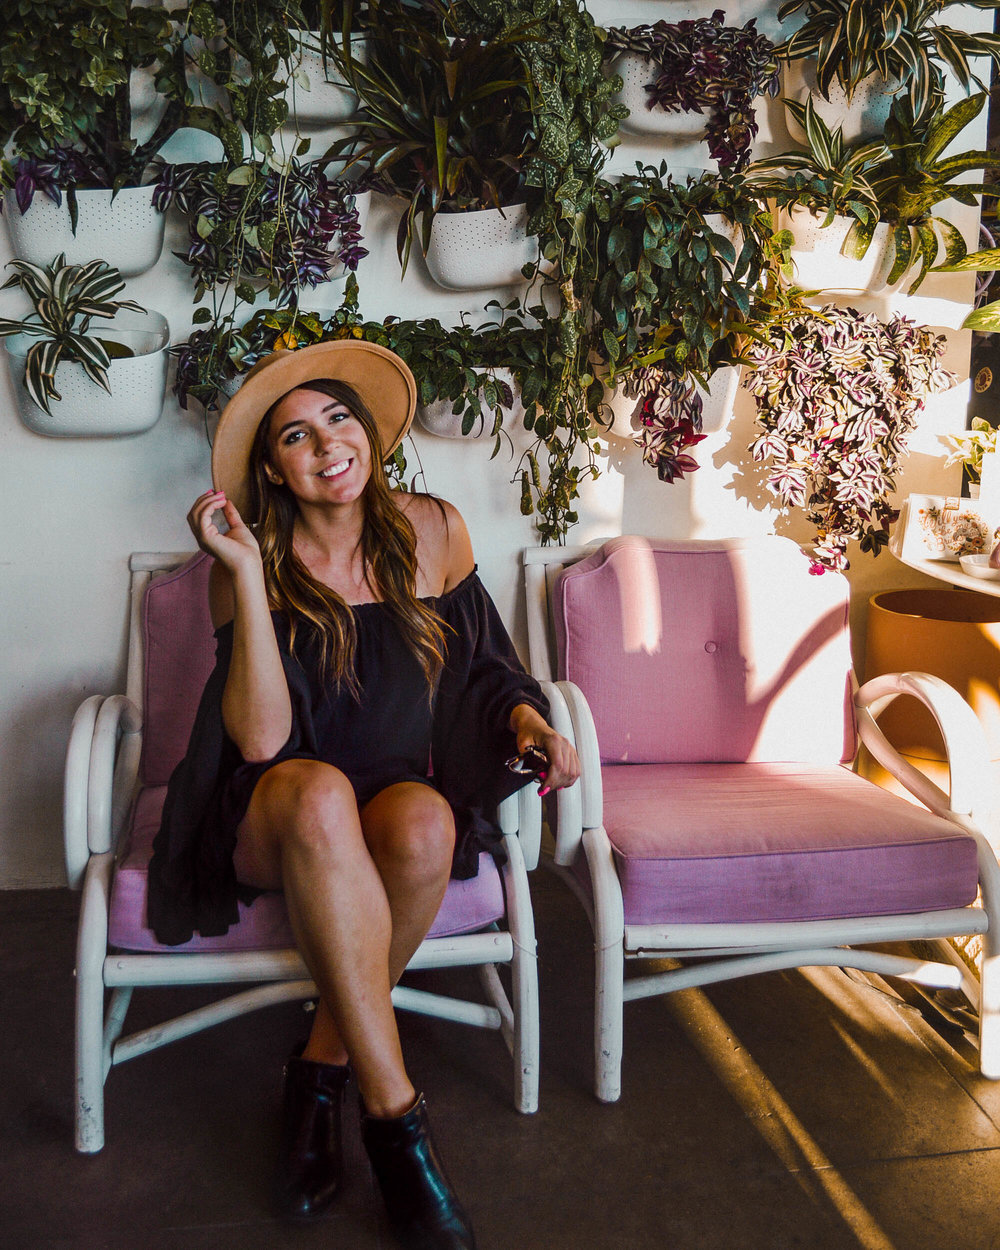 Best Instagram Spots in San Diego: Popular Insta-worthy Locations / The Best Photo Walls in San Diego - North Park / goseekexplore.com / go seek explore by ally archer